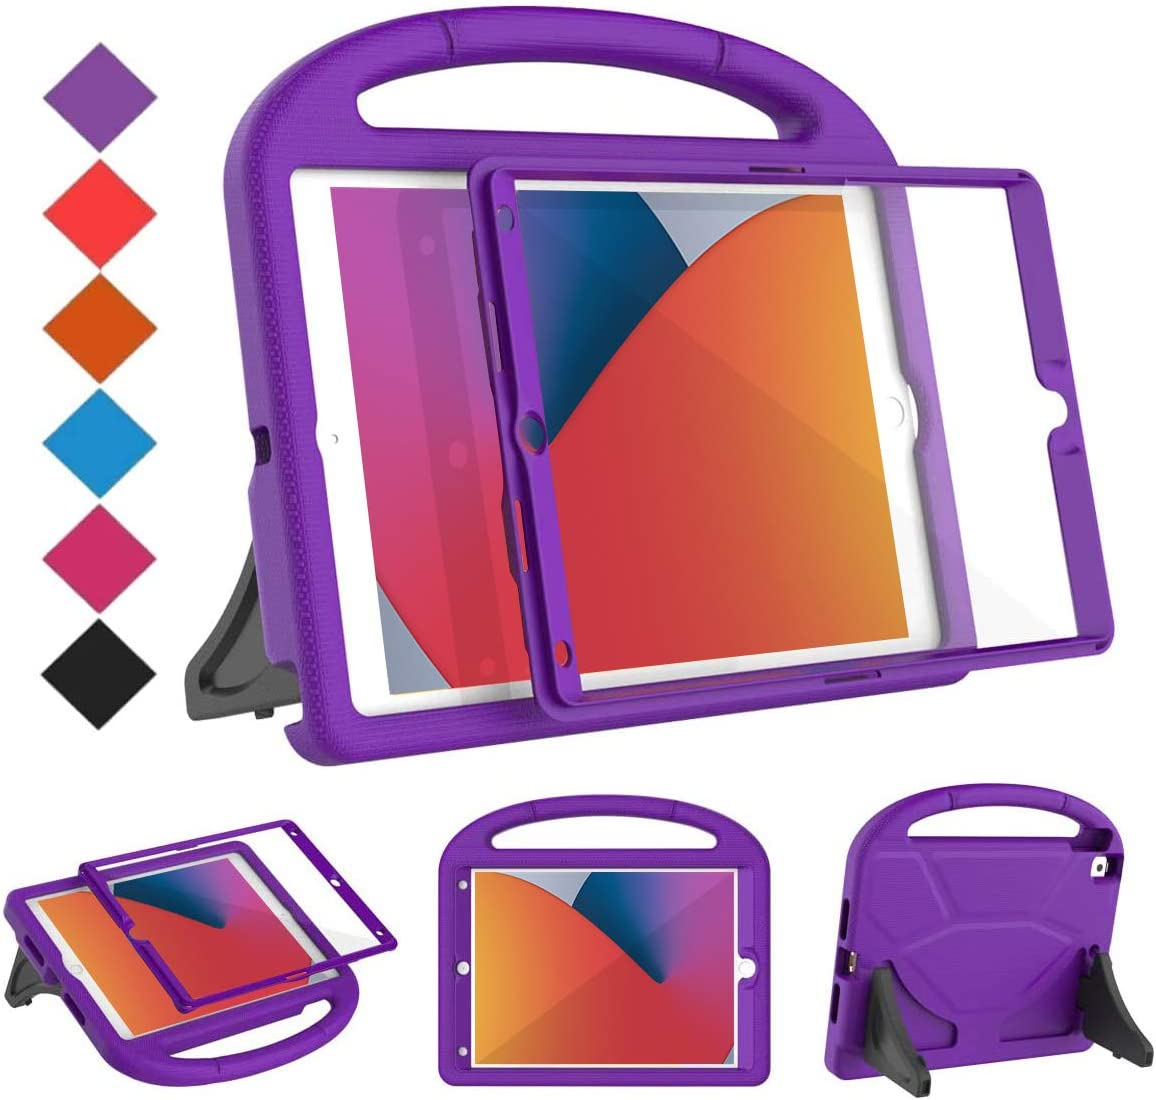 """BMOUO Kids Case for iPad 10.2 2019/2020, iPad 10.2 Case - Built-in Screen Protector for iPad 7th/8th Generation Case, Shockproof Light Weight Handle Stand Case for New iPad 10.2"""" 2019/2020 - Purple"""